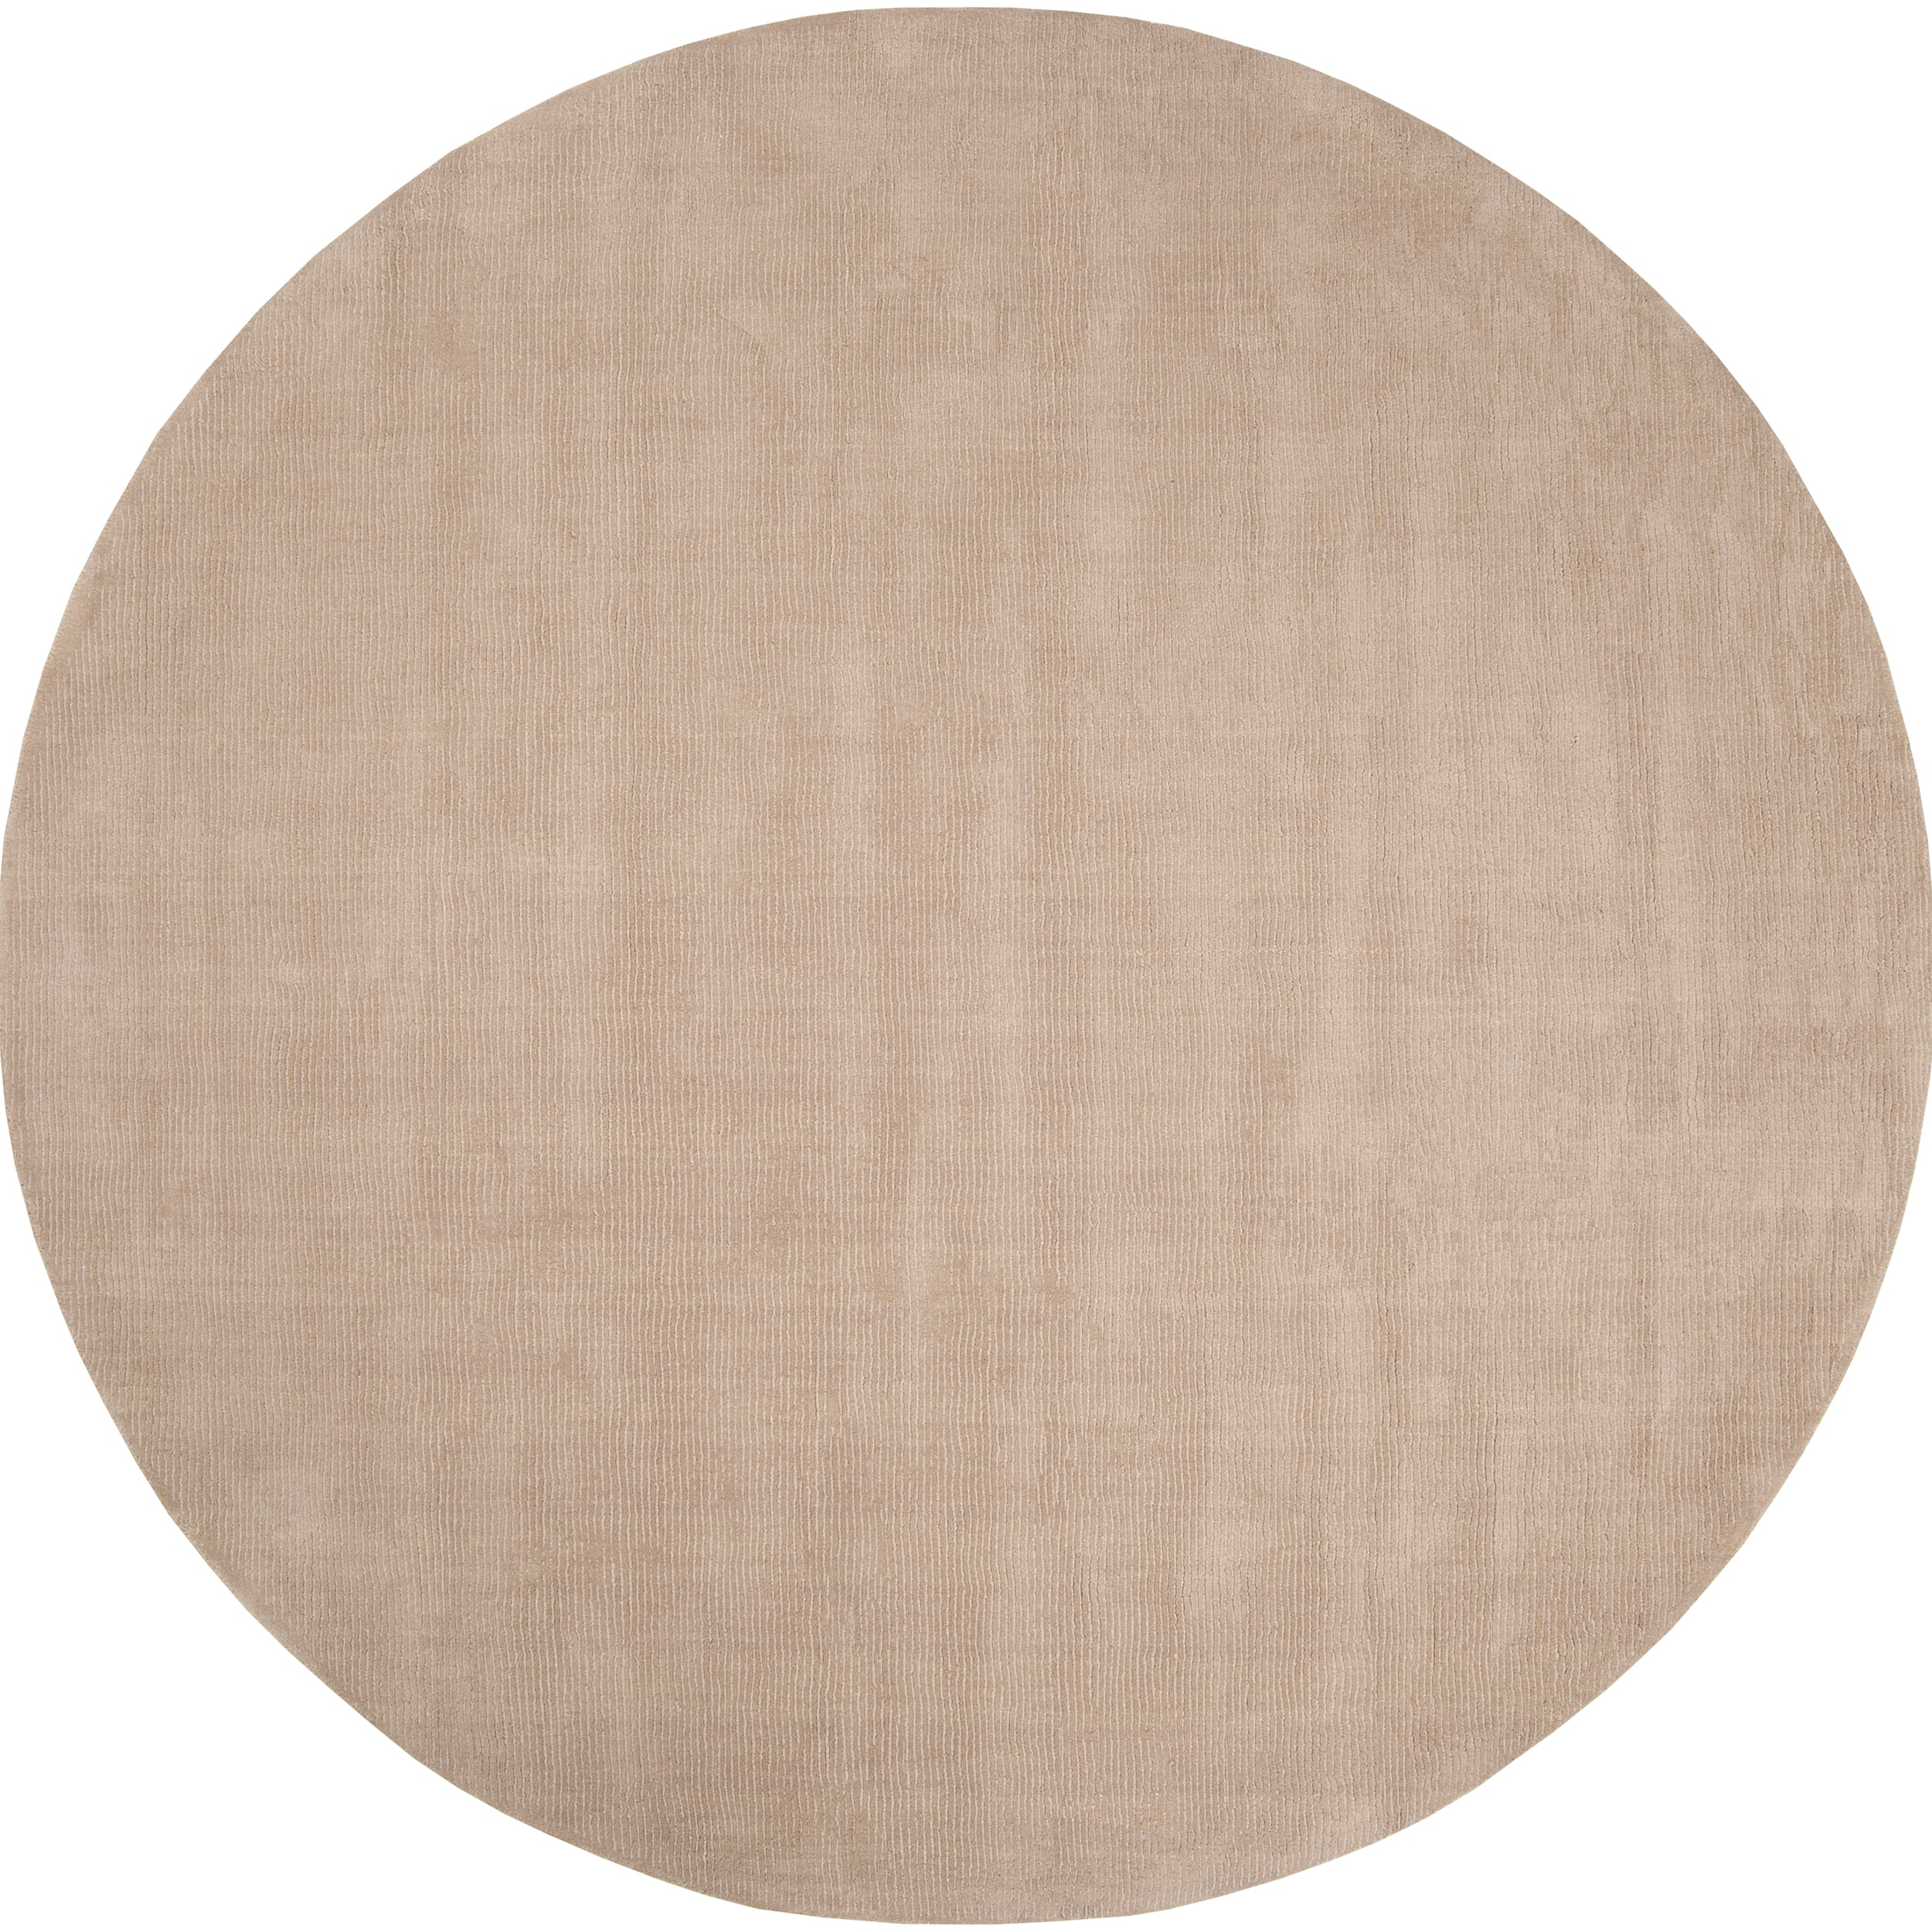 Hand Crafted Beige Solid Casual Dipson Wool Area Rug 6